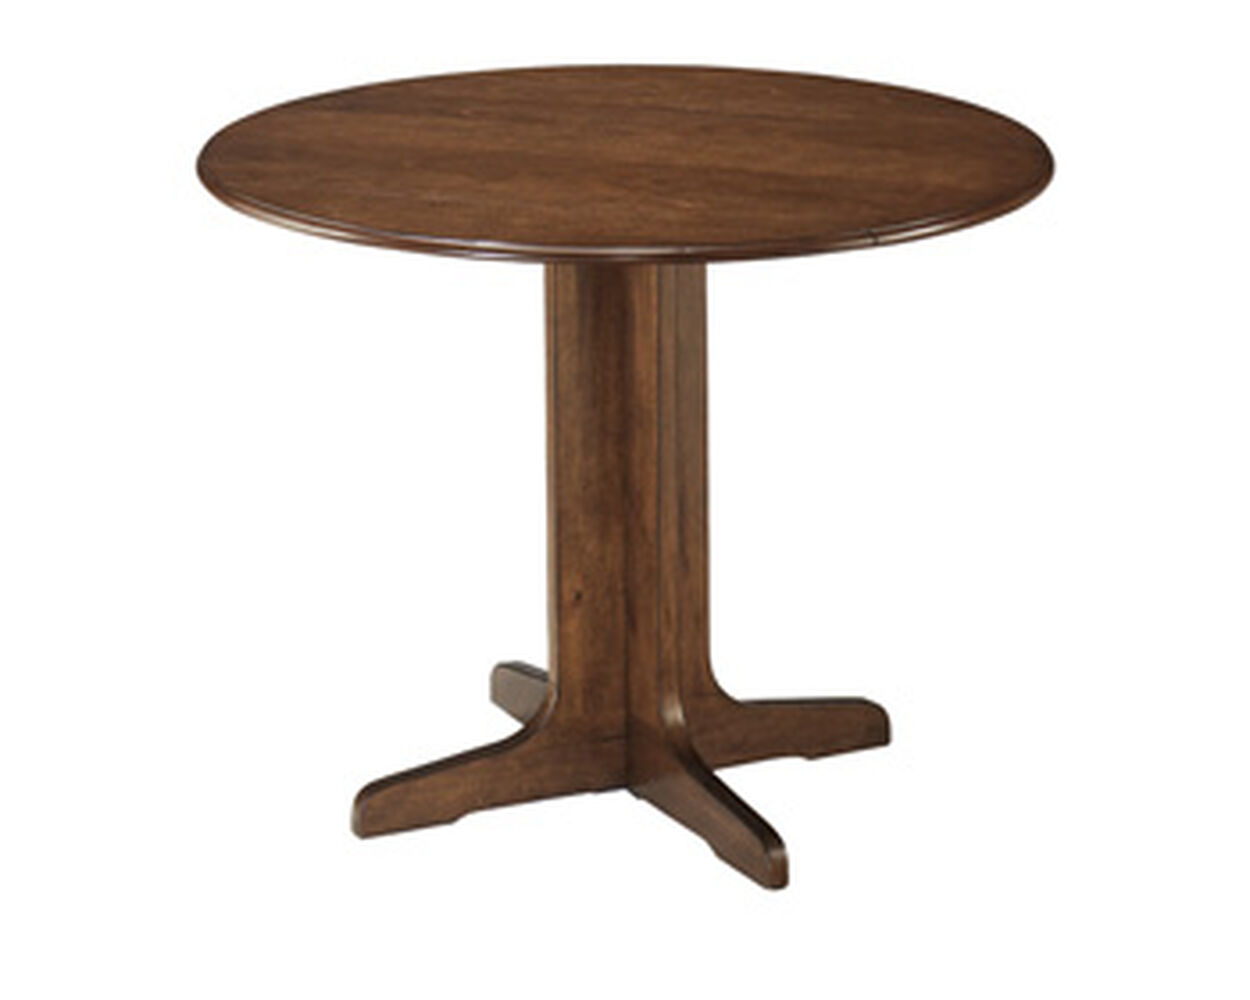 ashley stuman medium brown round drop leaf table mathis brothers furniture. Black Bedroom Furniture Sets. Home Design Ideas